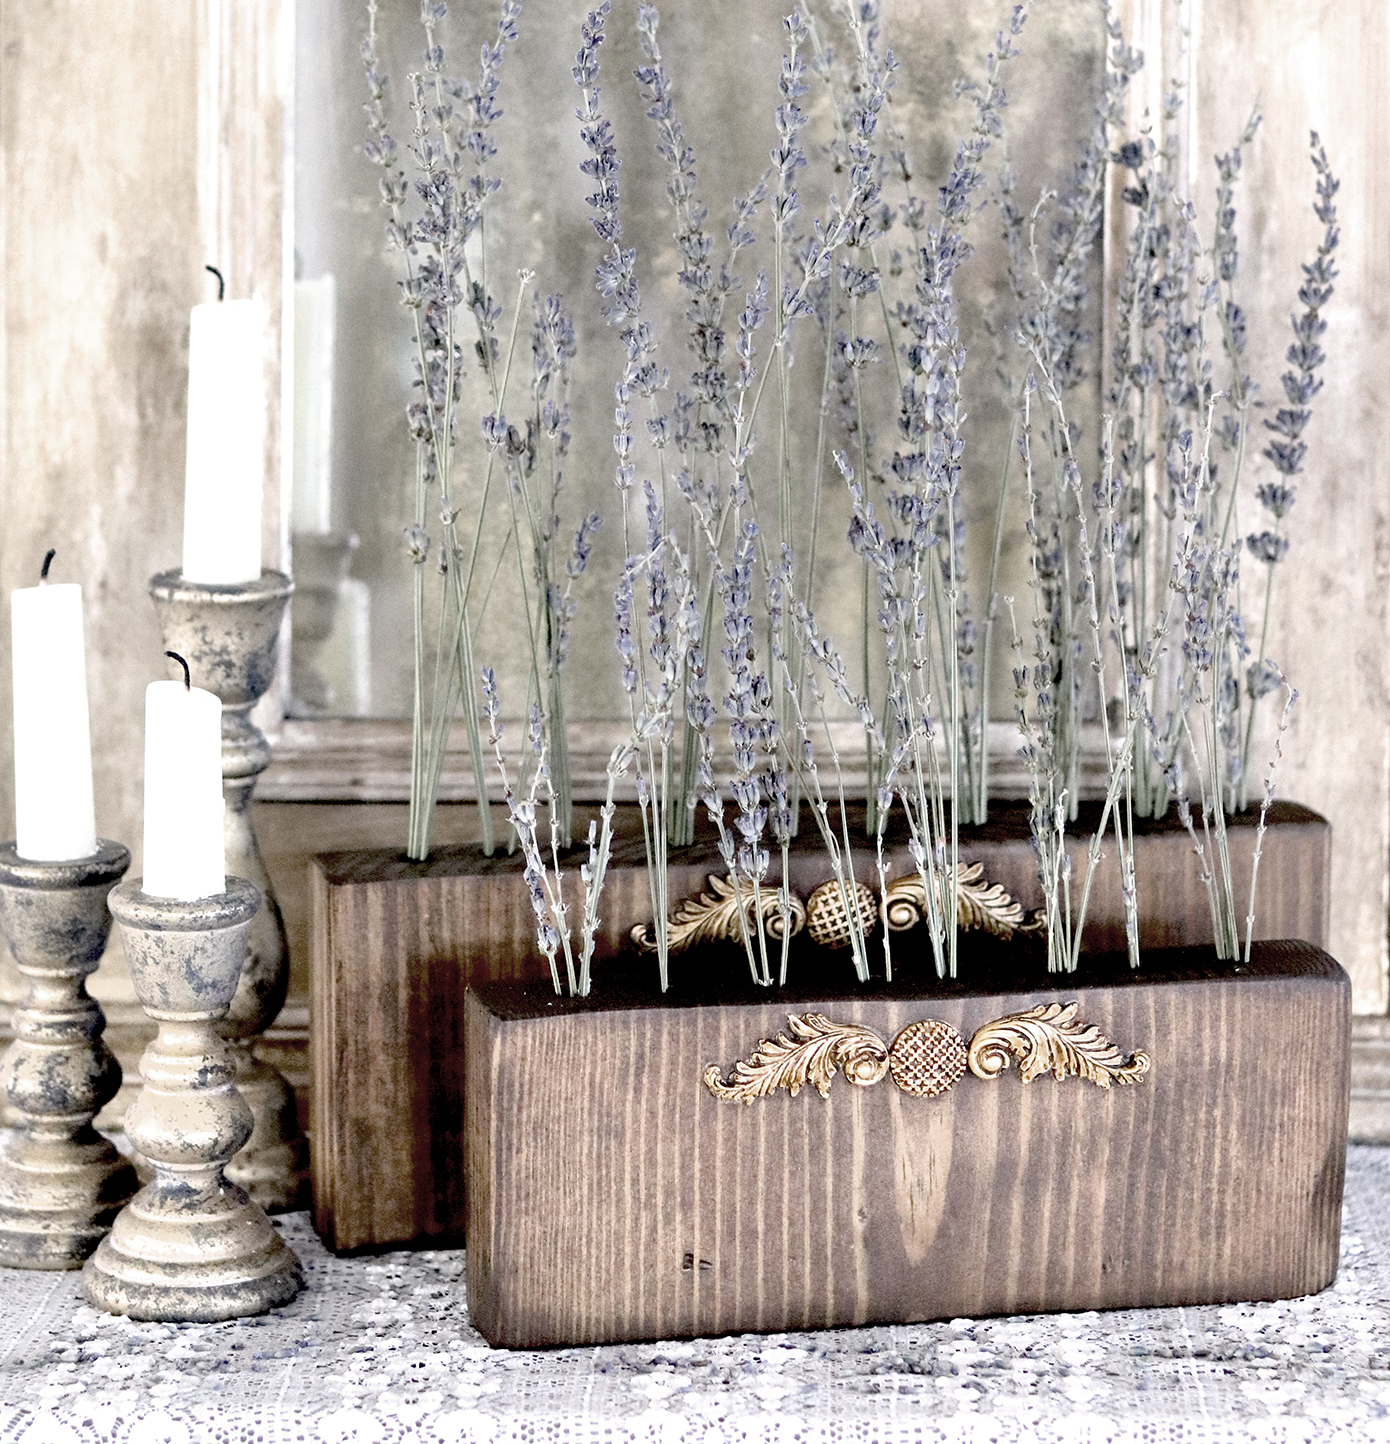 Boroughfare Home Vintage Lavender Set with French Decor